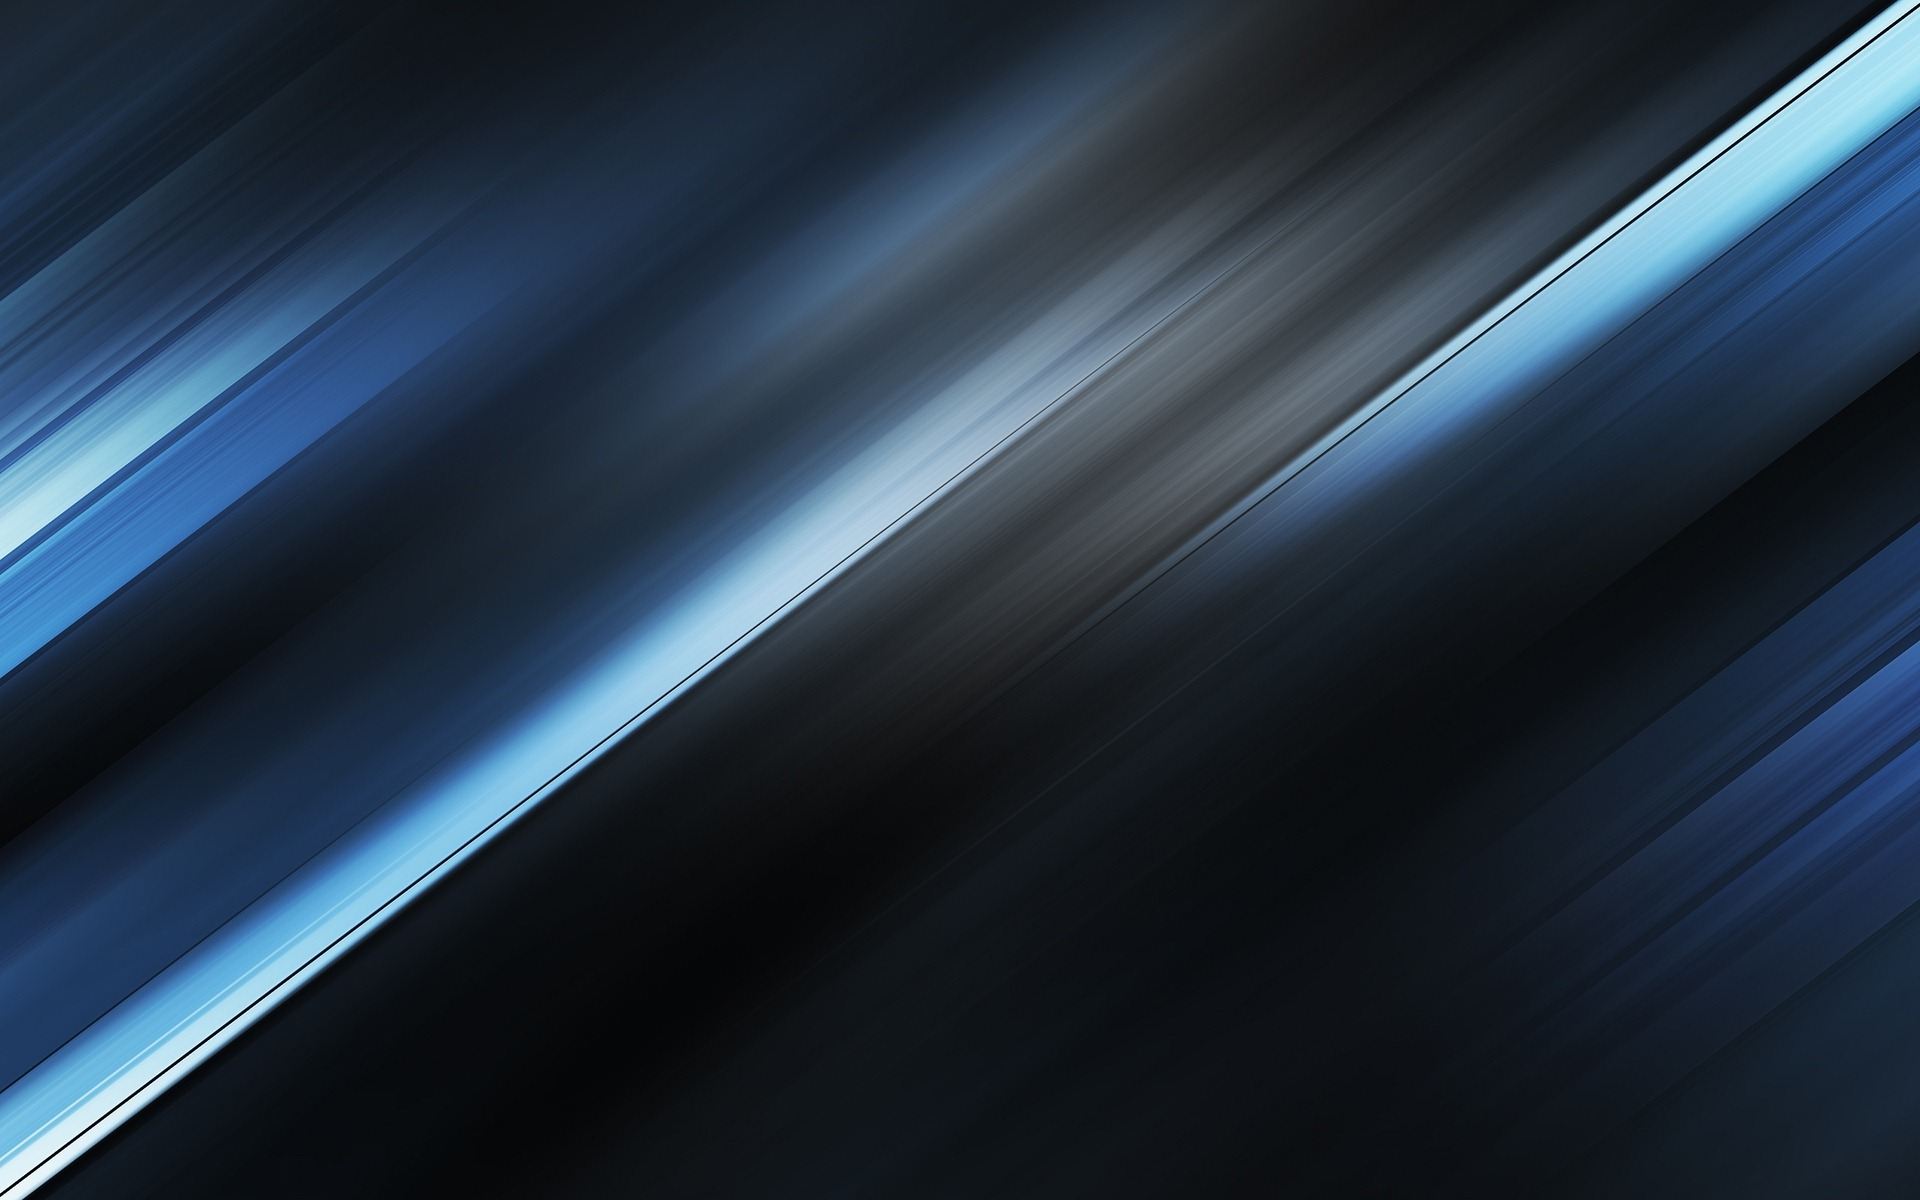 Free HD Abstract Backgrounds 1920x1200